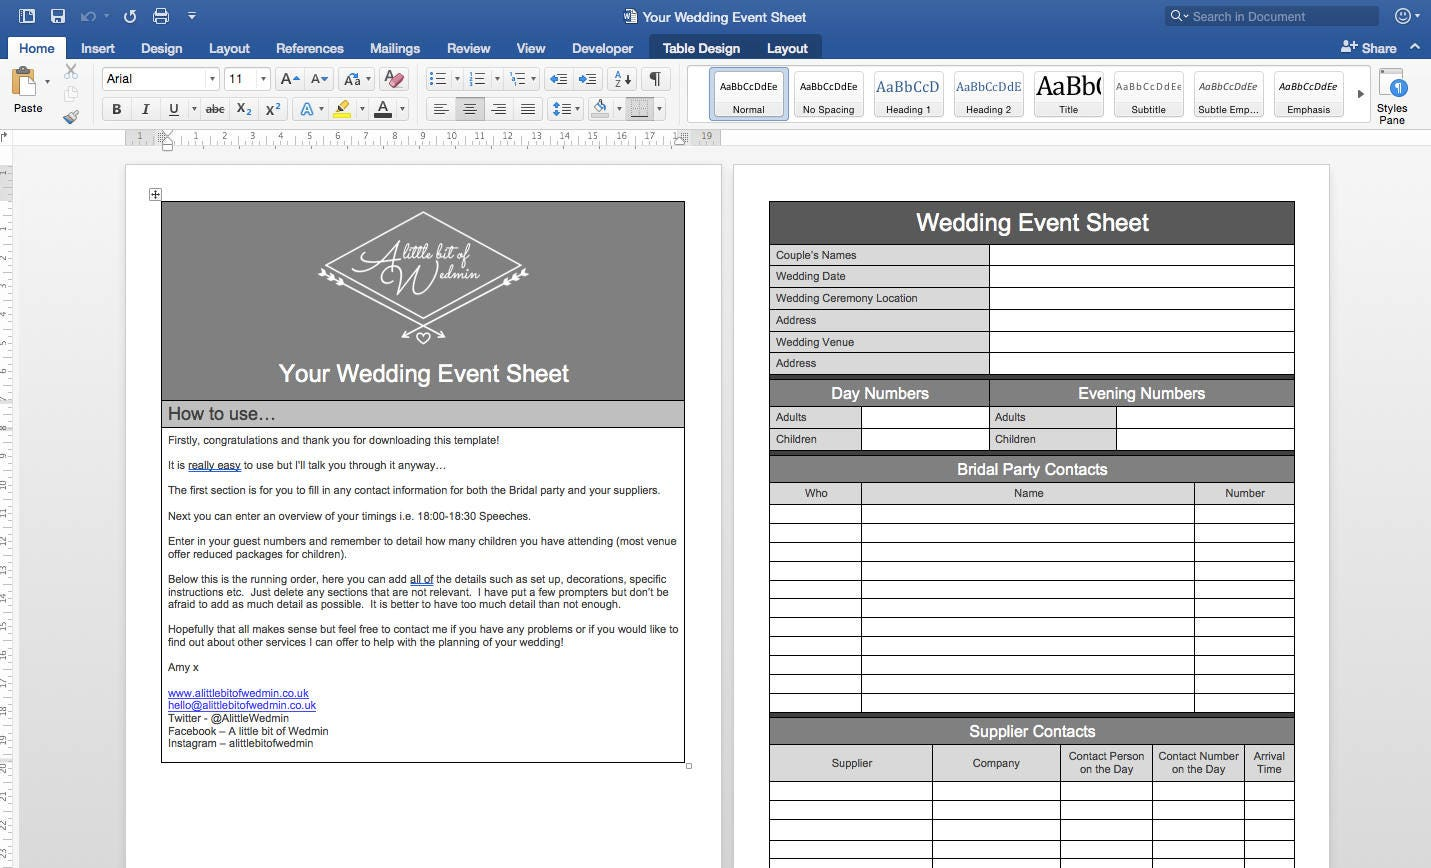 Your Wedding Event Sheet Wedding Planning Template